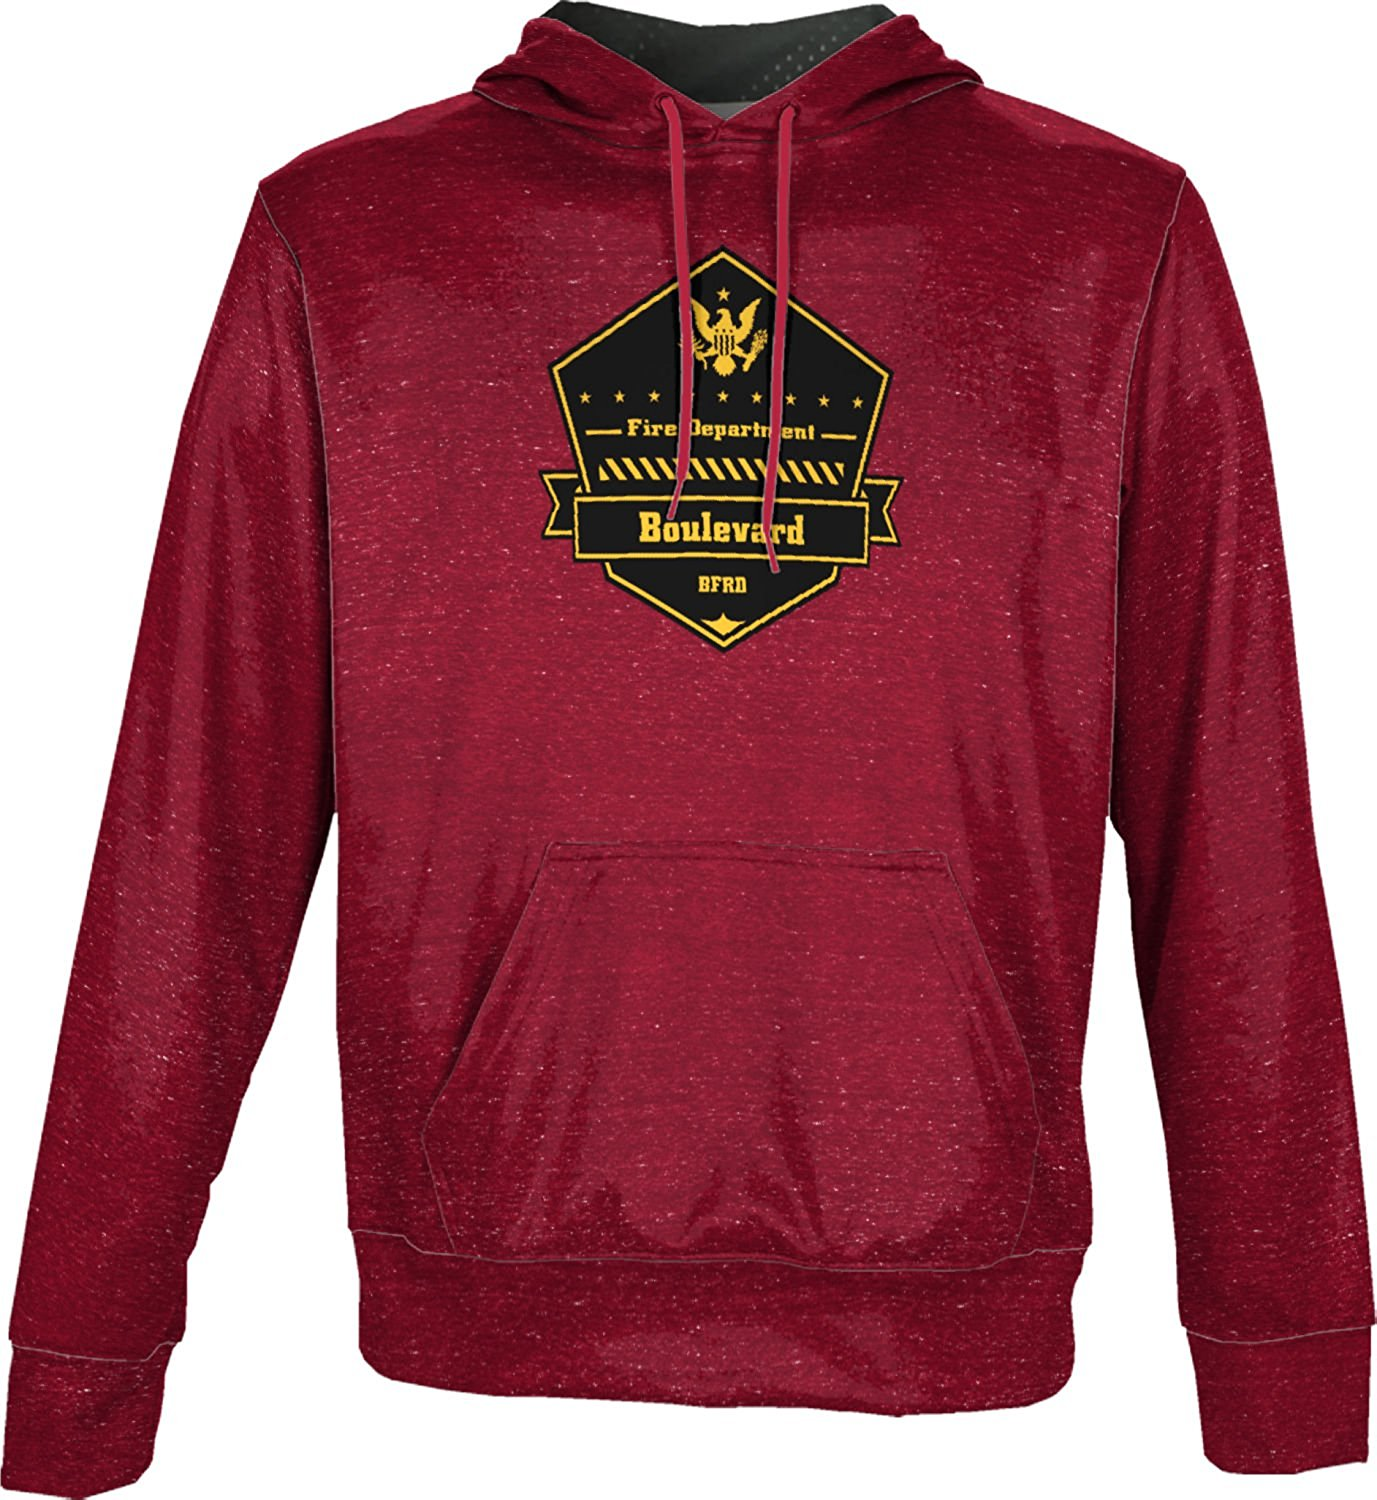 ProSphere Boys' Boulevard Fire and Rescue Department Fire Department Heather Hoodie Sweatshirt